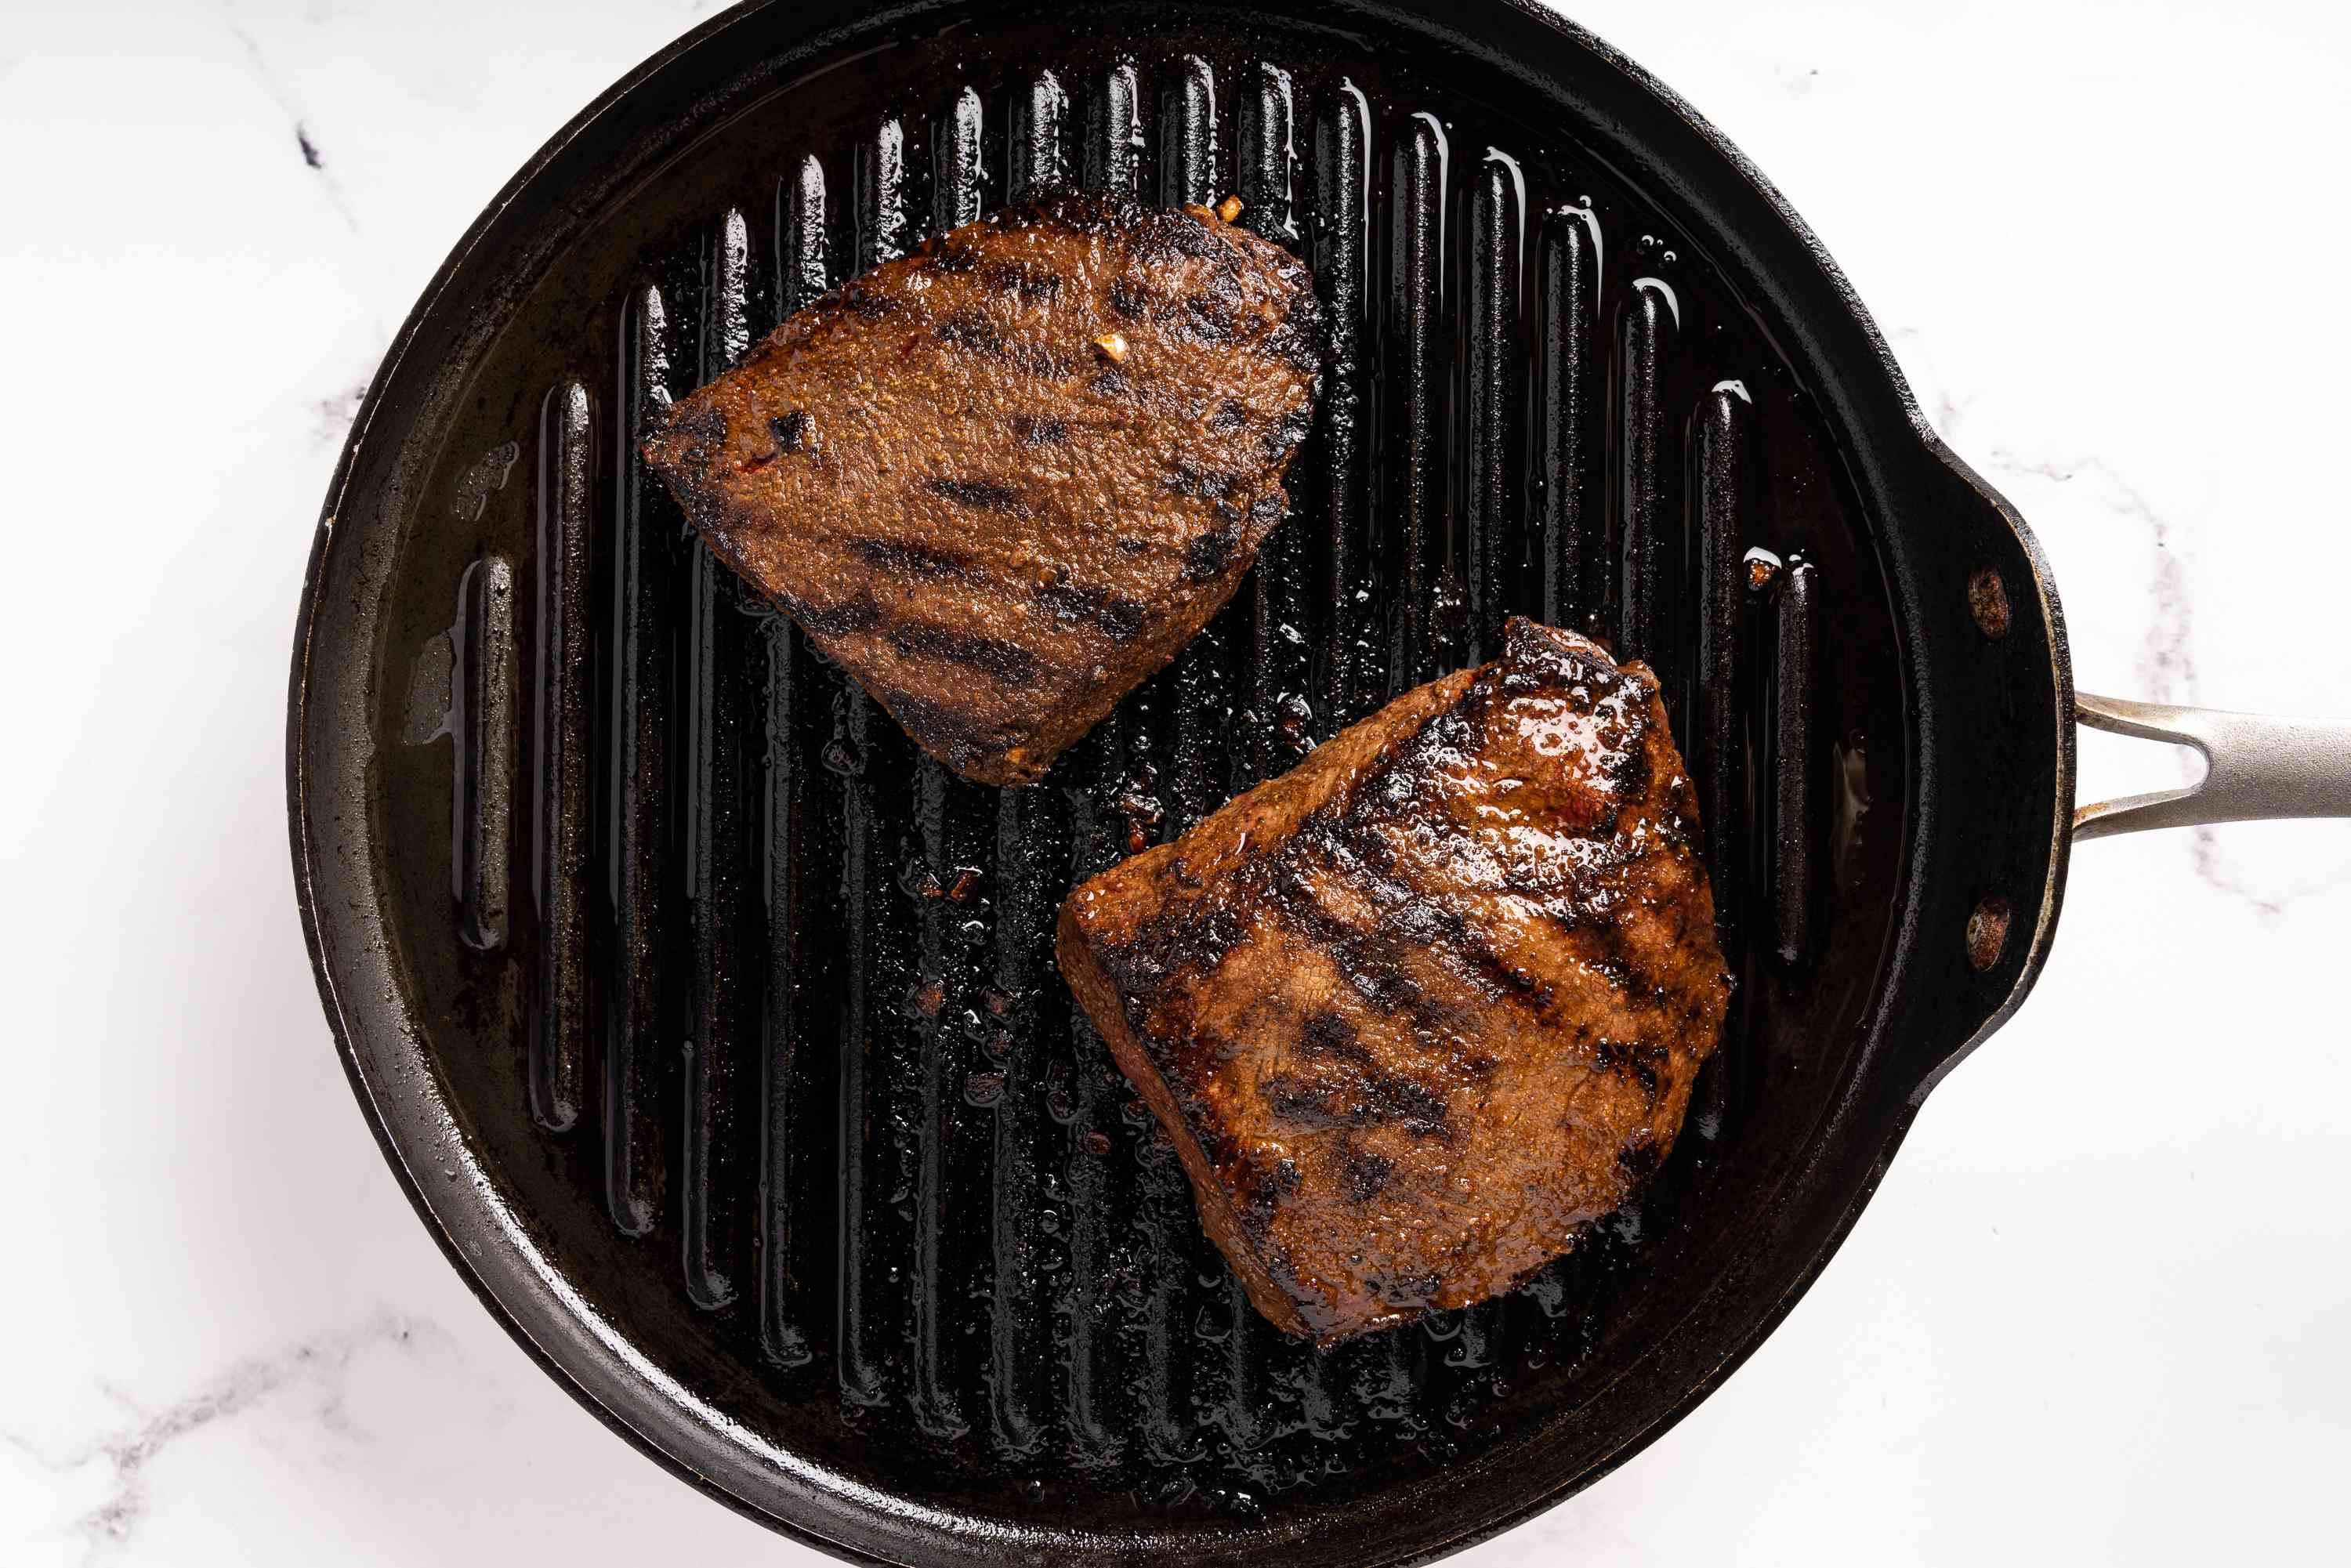 steaks cooking on a grill pan